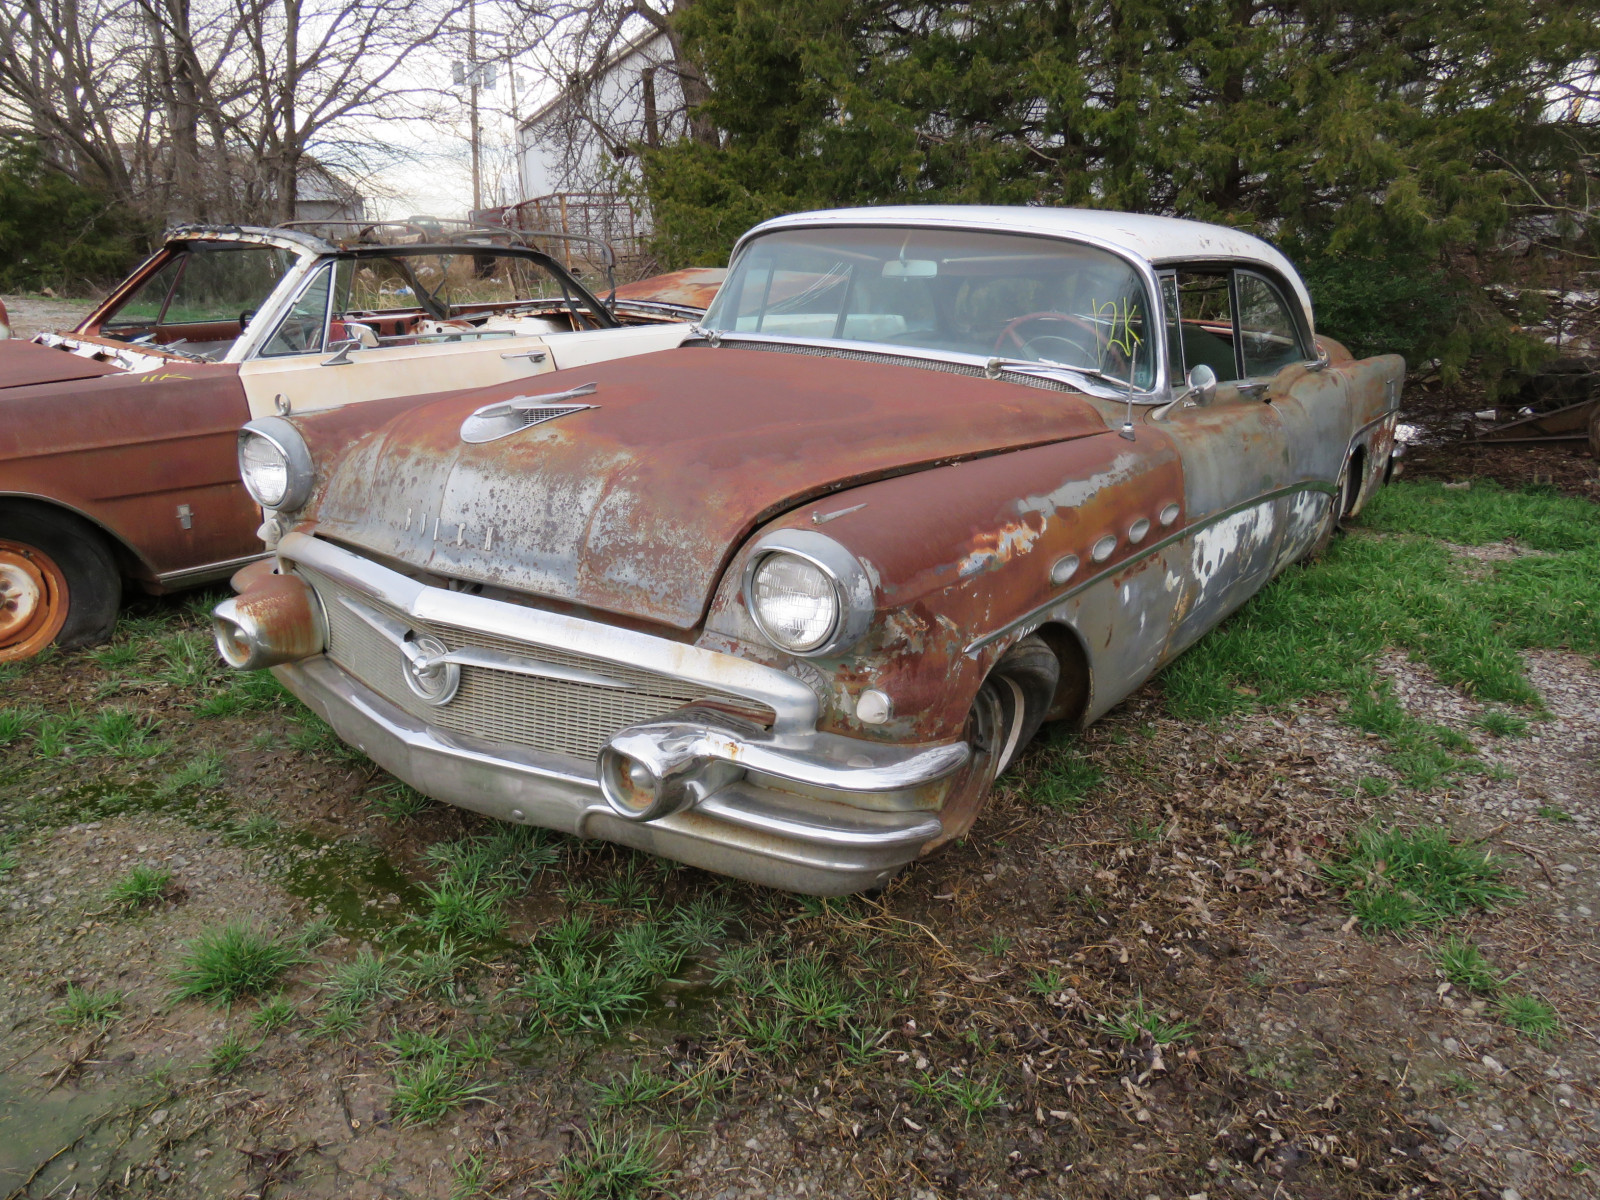 1956 Buick Roadmaster 4dr HT C1076048 - Image 1